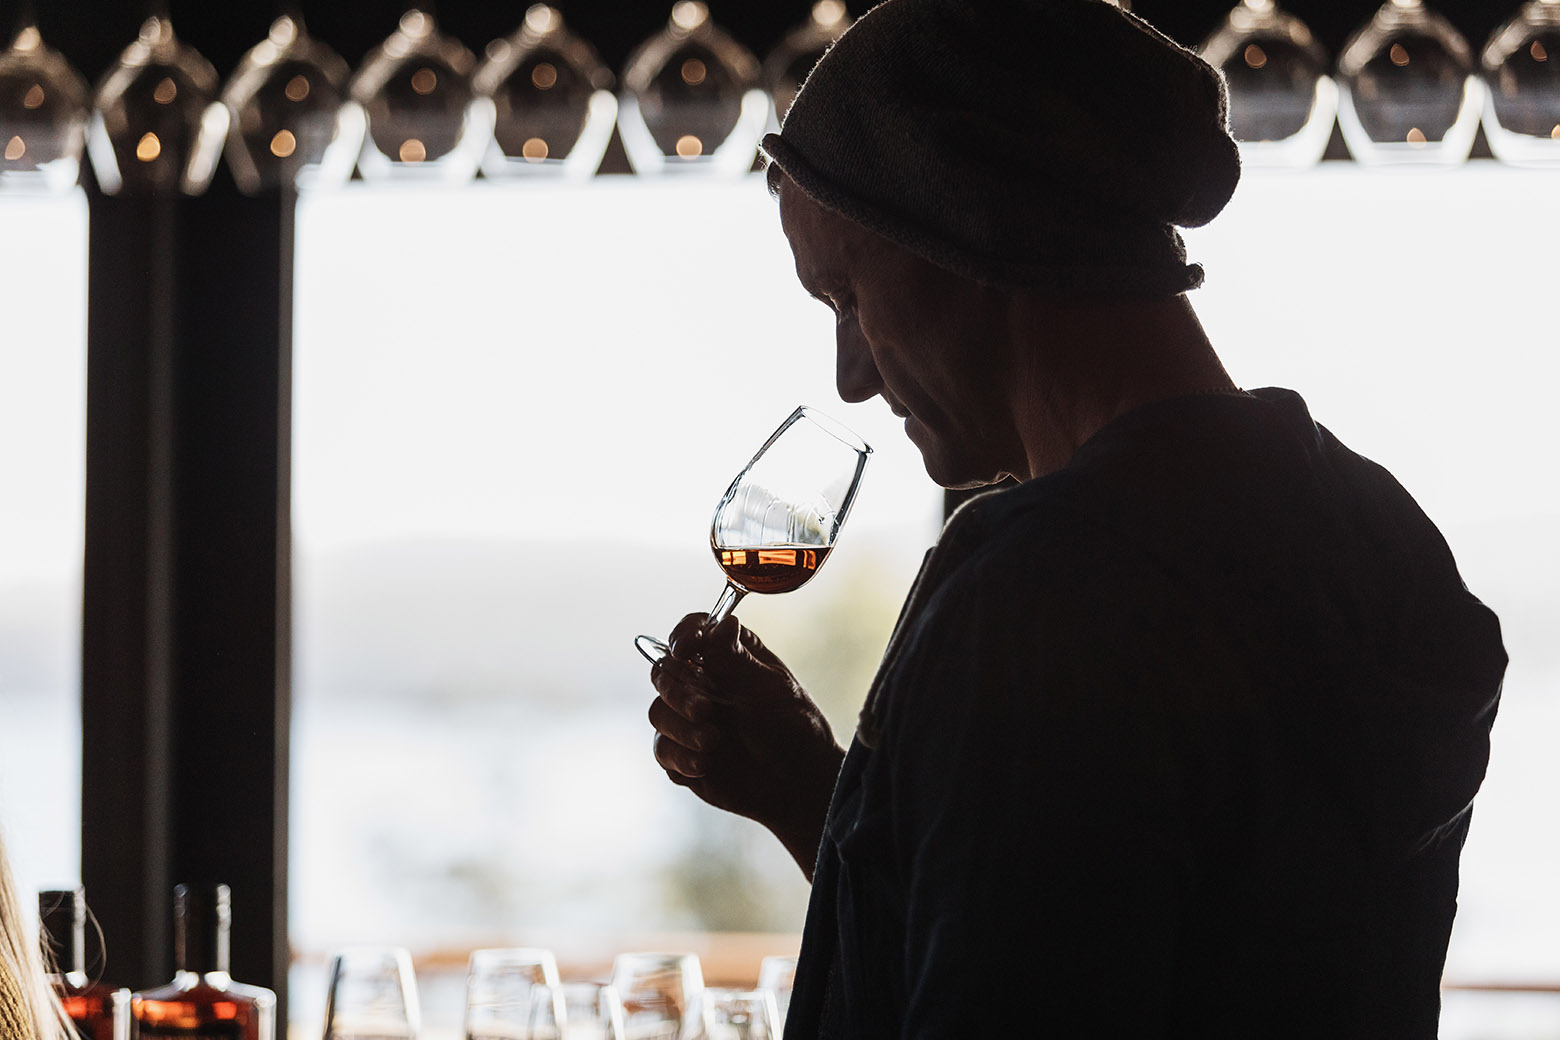 Taste whisky on Bruny Island Tours from Hobart